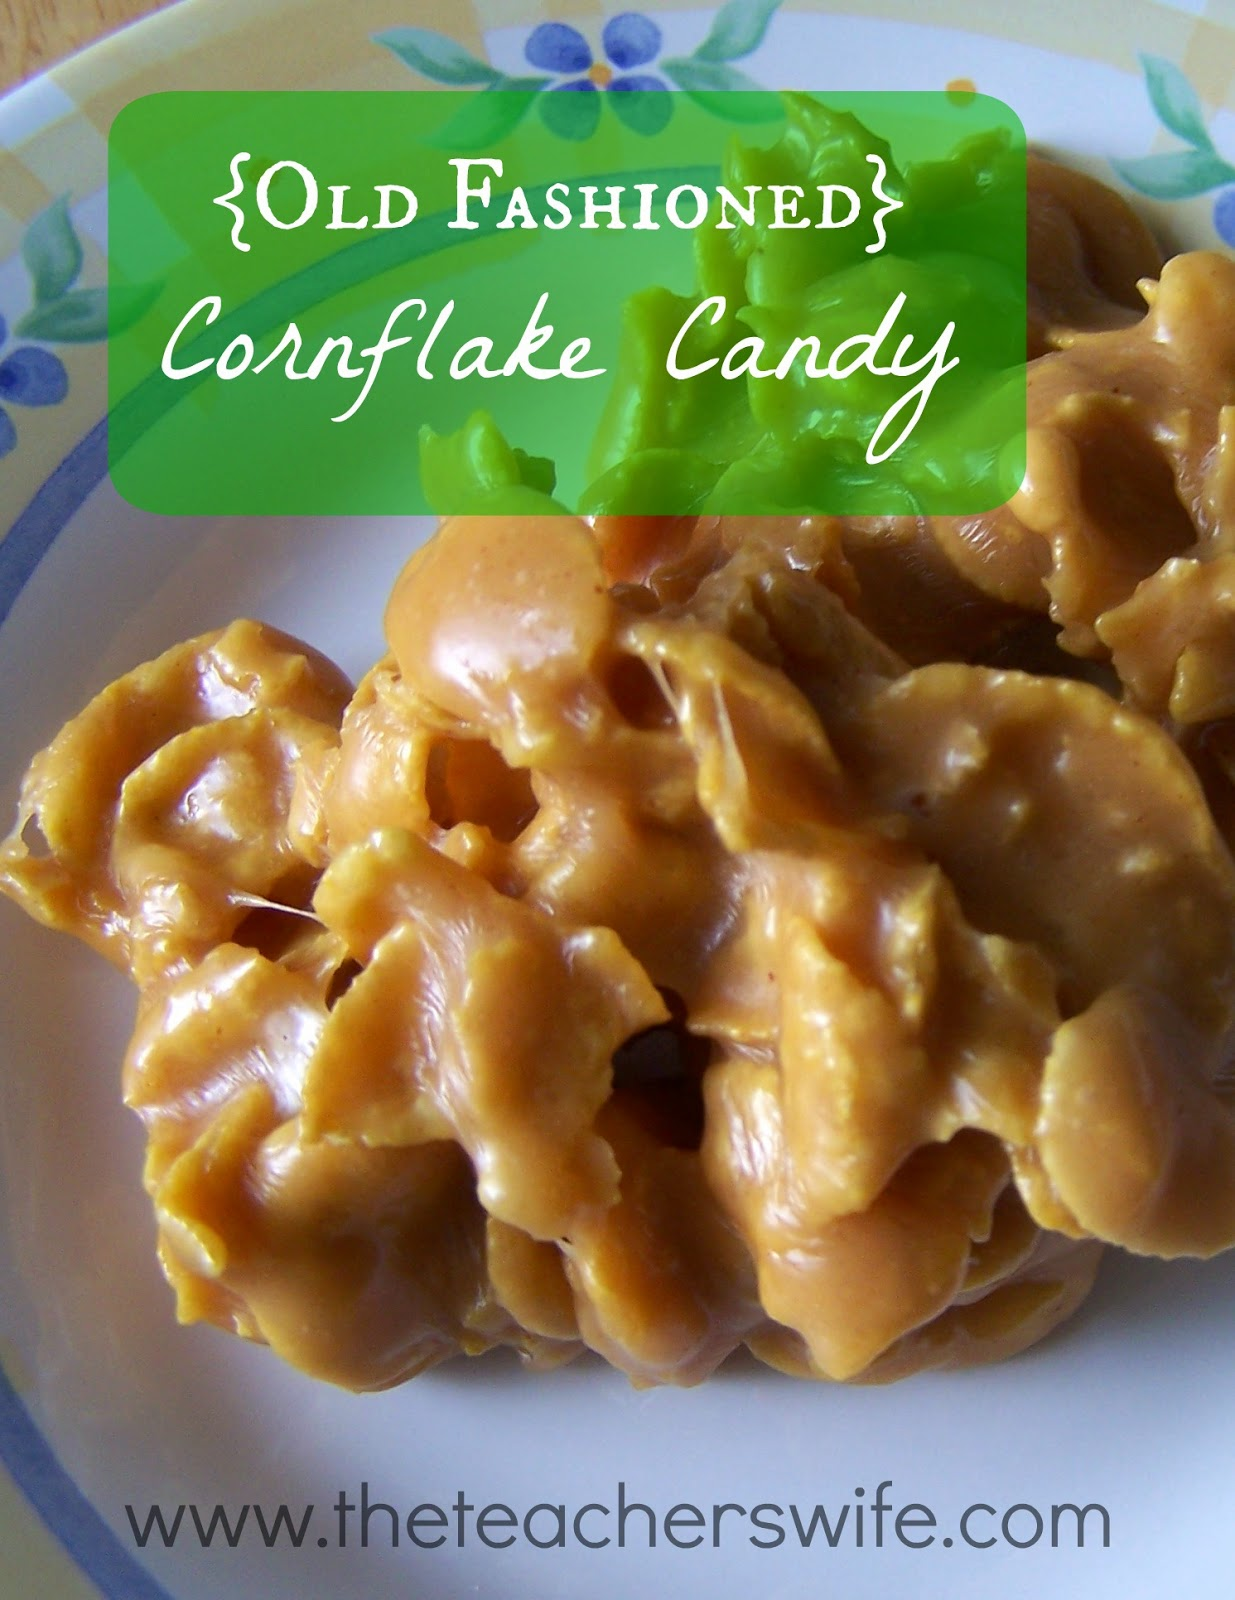 Old fashioned sponge candy 6